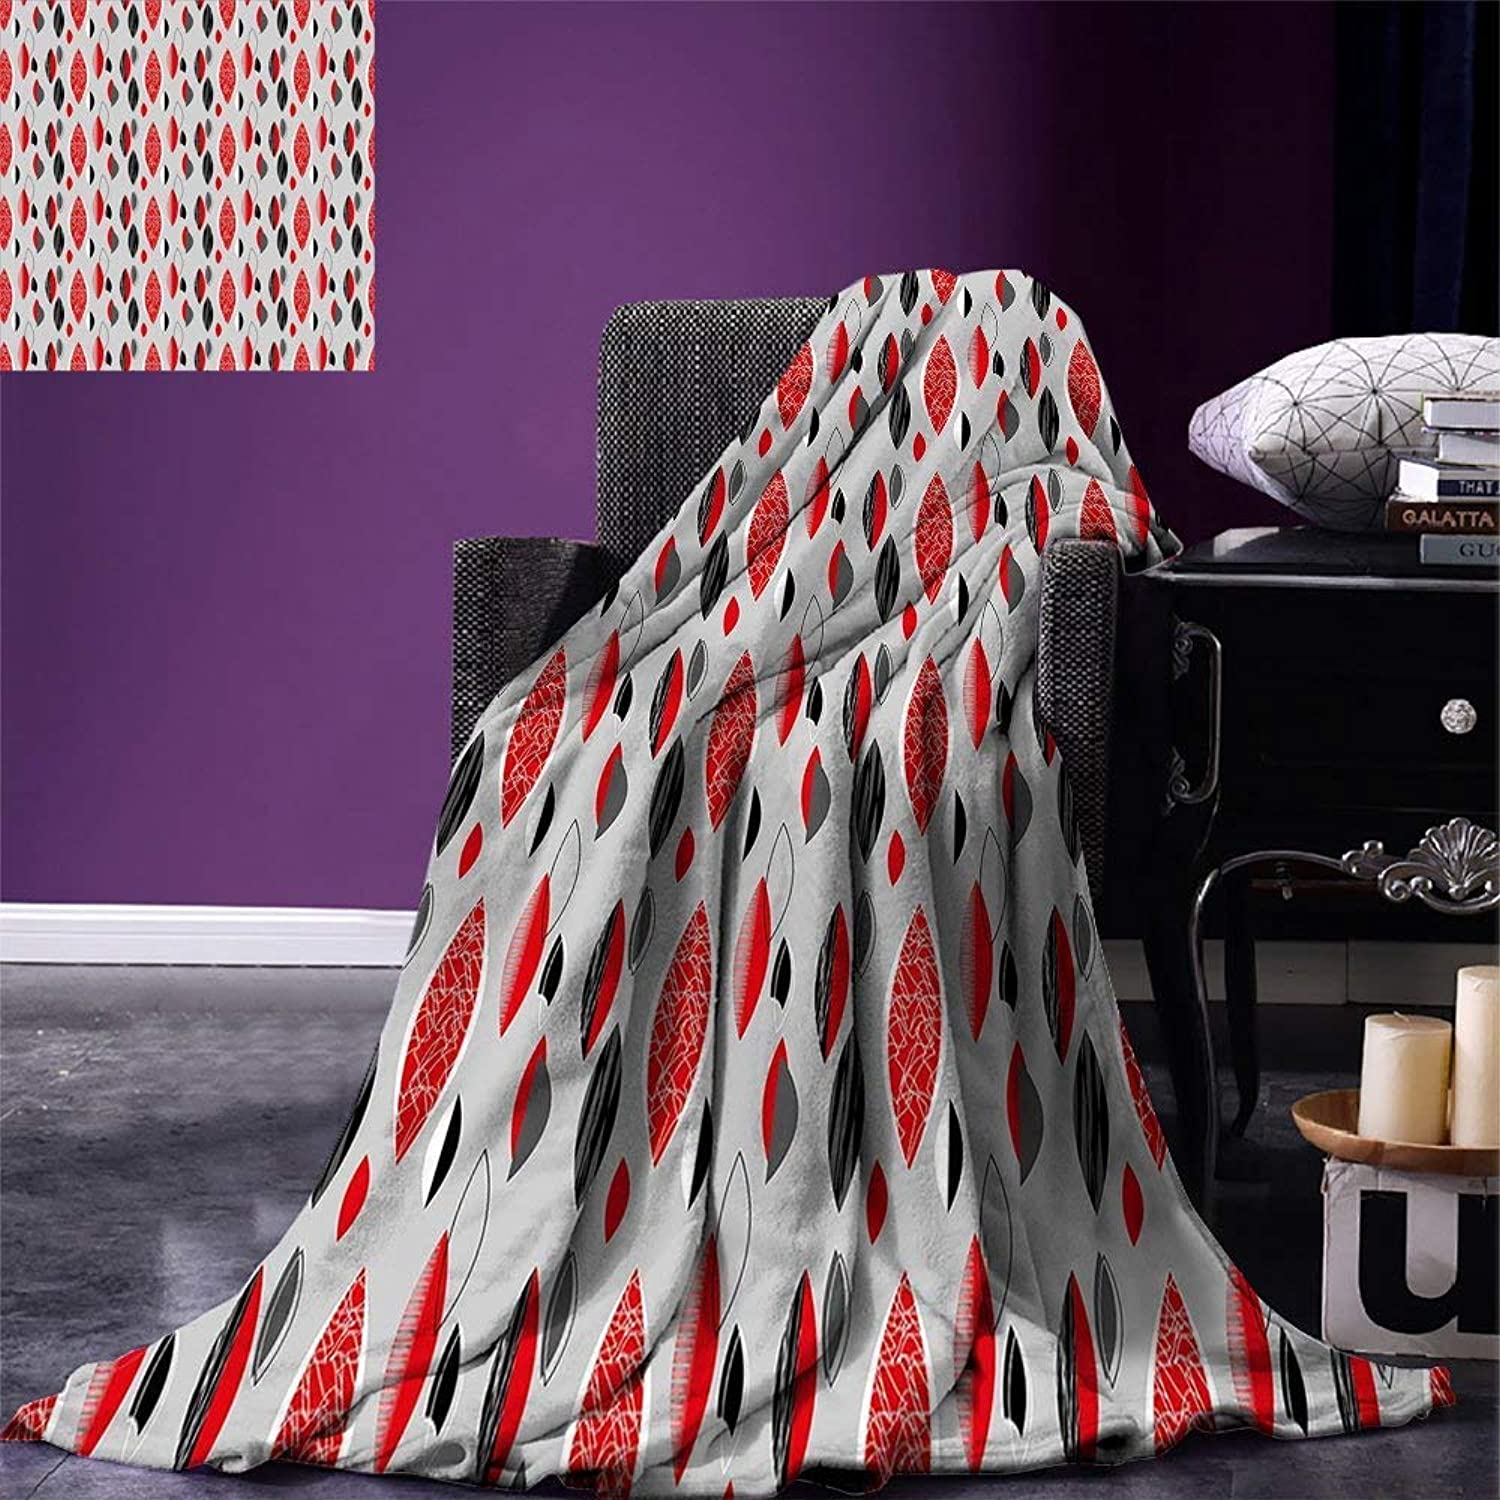 VANKINE Mid Century Super Soft Lightweight Blanket Abstract Oval Leaf Forms with Different Designs and color Combinations Oversized Travel Fashion BlanketRed Black Pale Grey